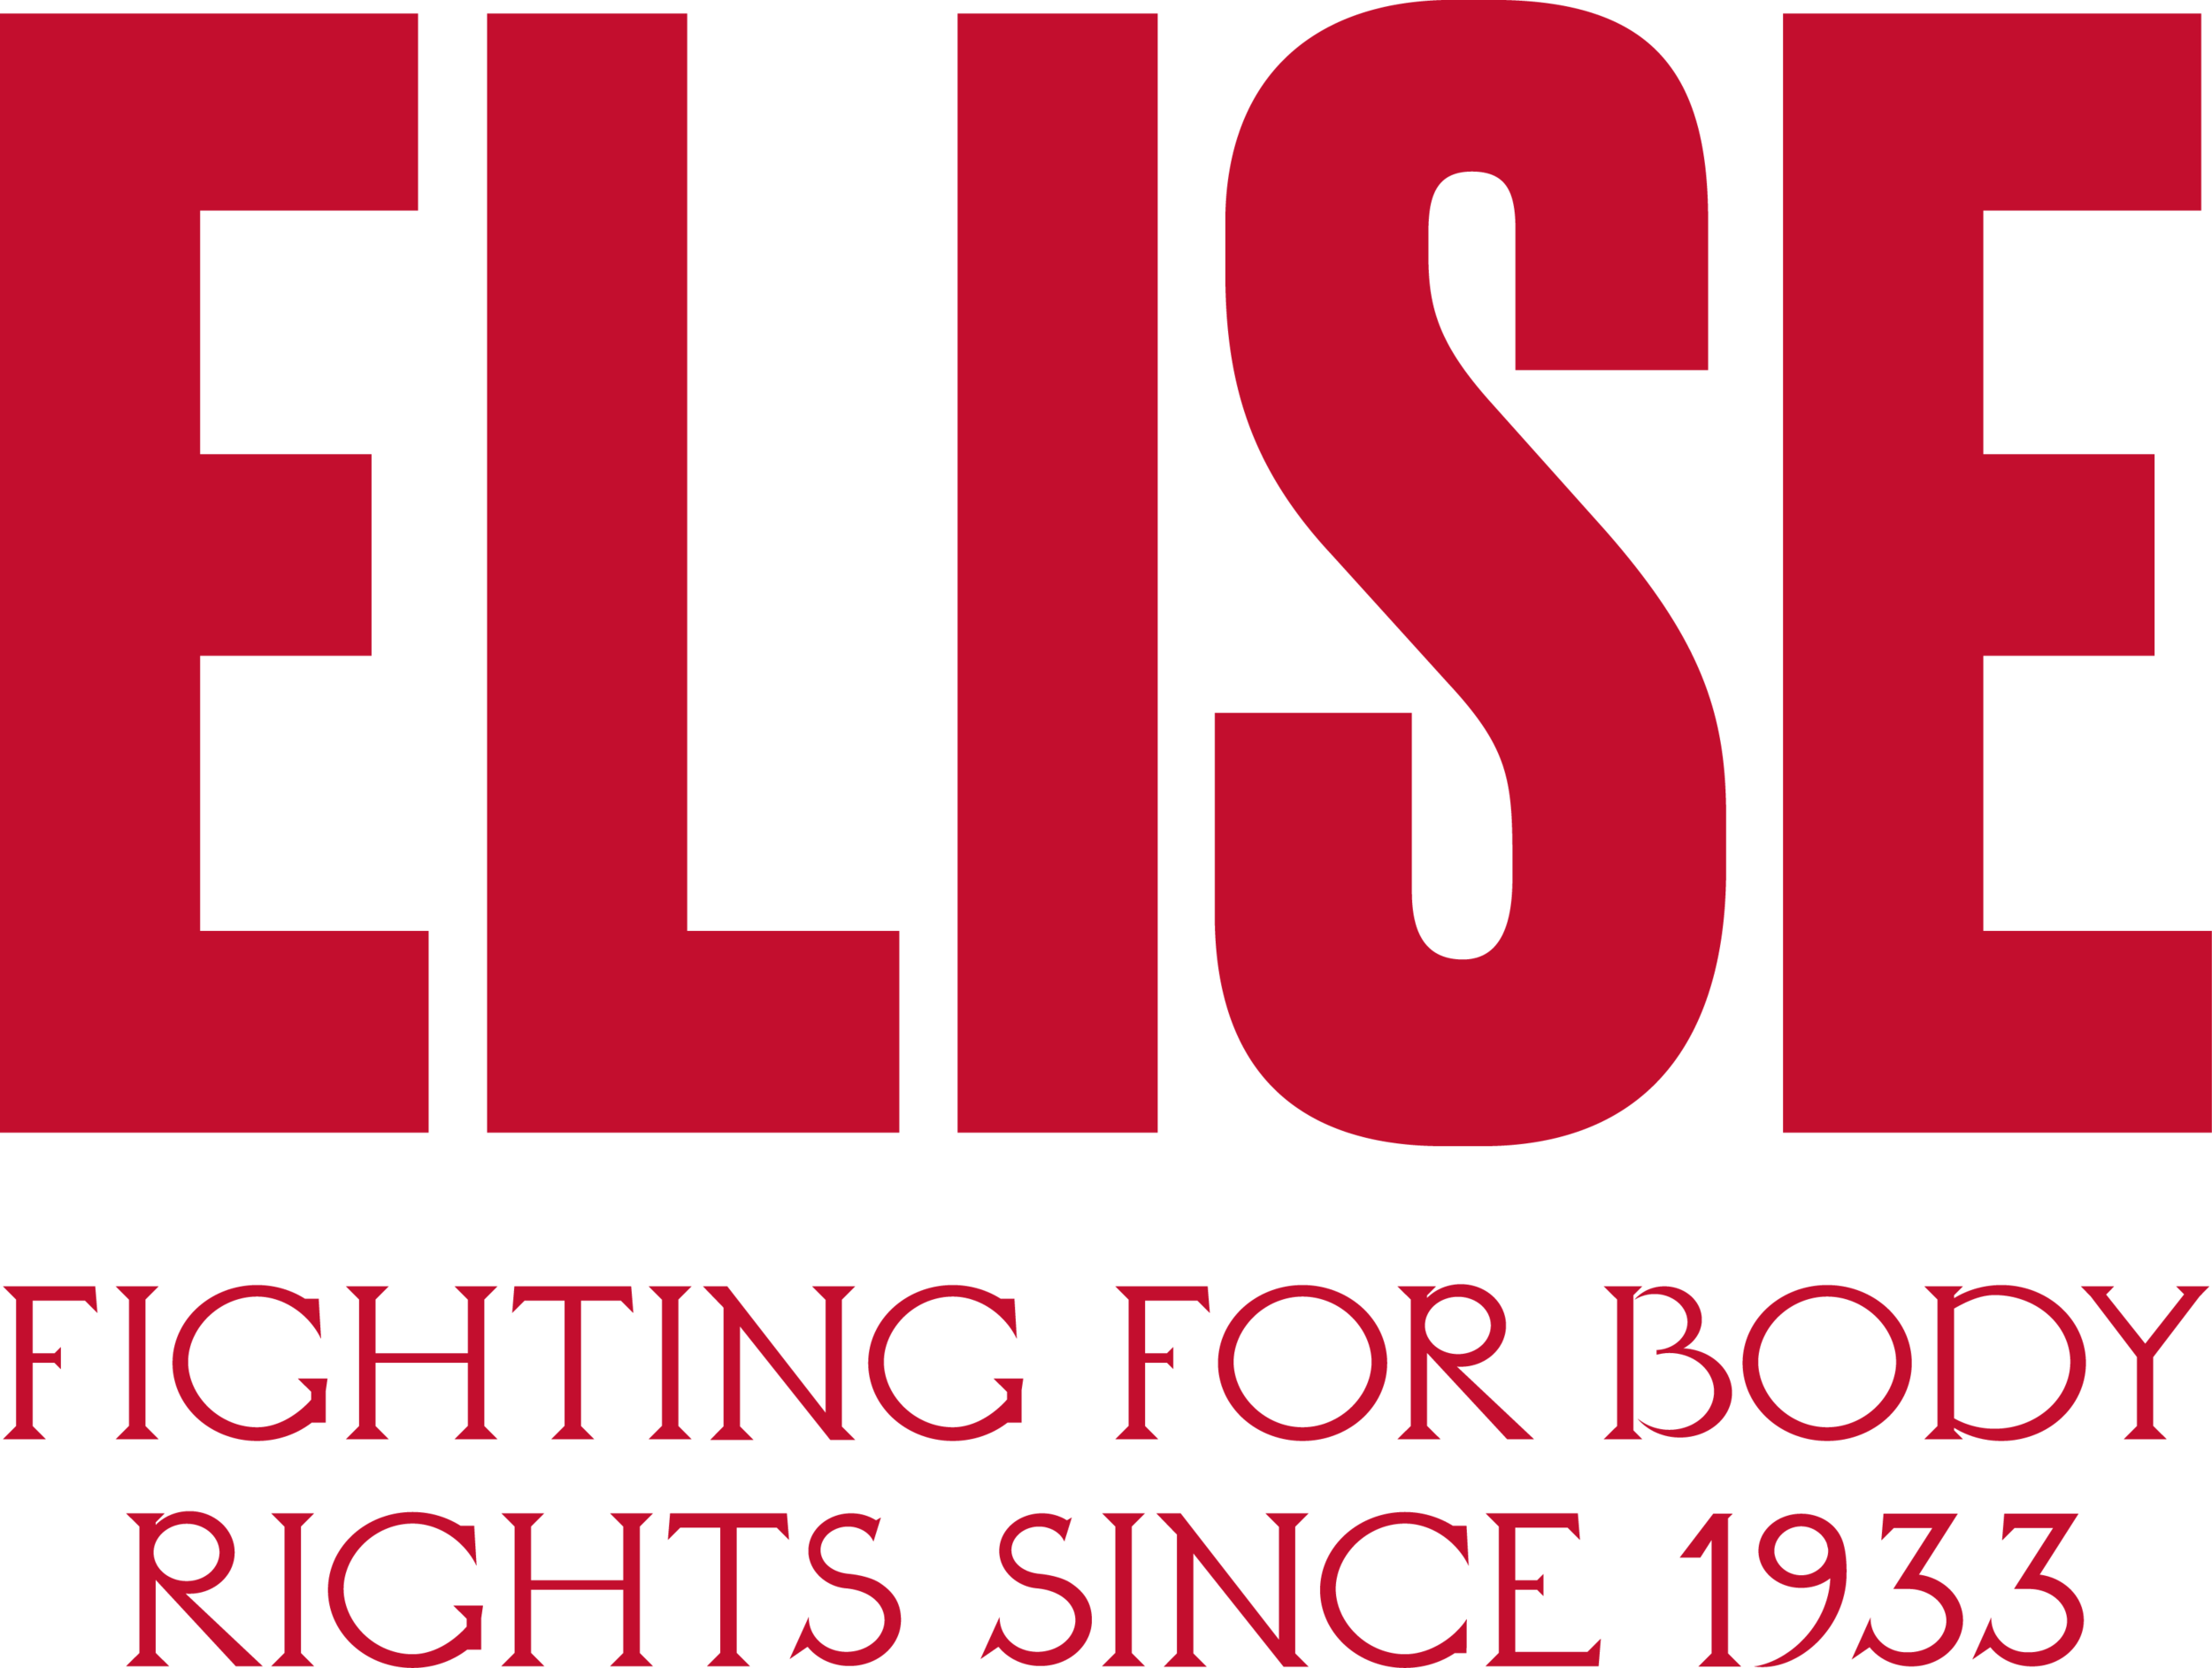 ELISE_LOGO_RED.png